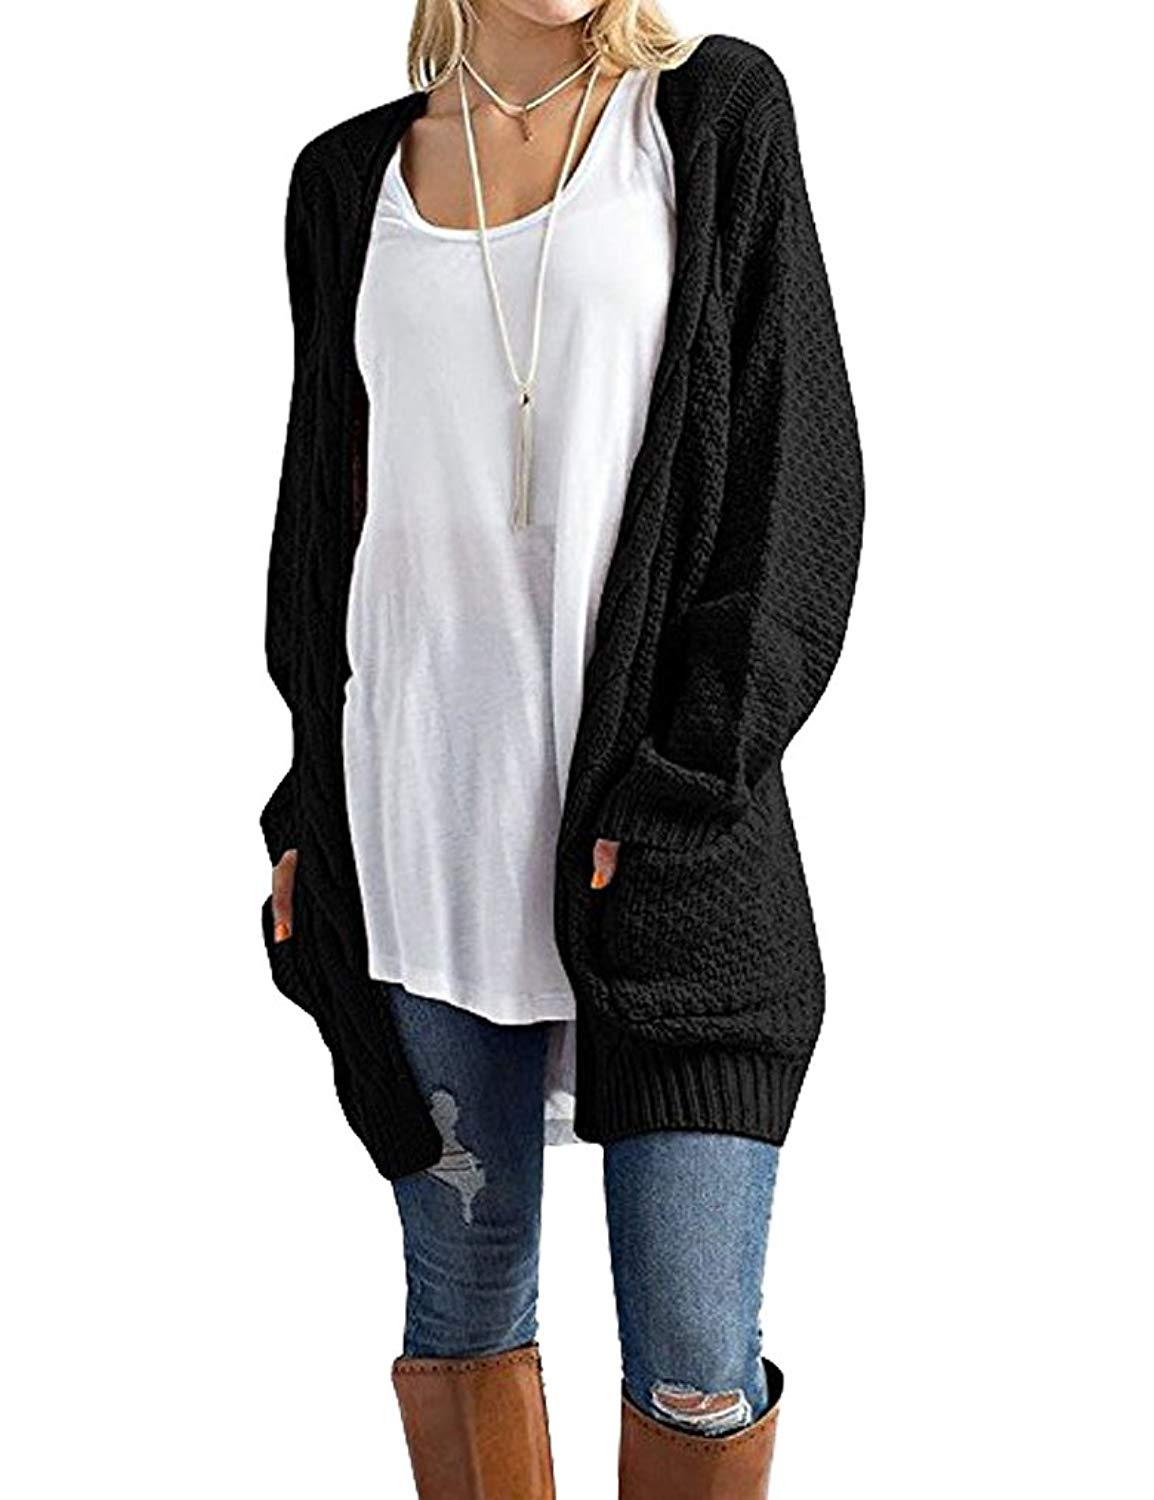 e8dbd46ae35905 Get Quotations · Tobrief Women s Long Sleeve Chunky Cable Knit Open Front Cardigan  Sweaters Outwear with Pockets